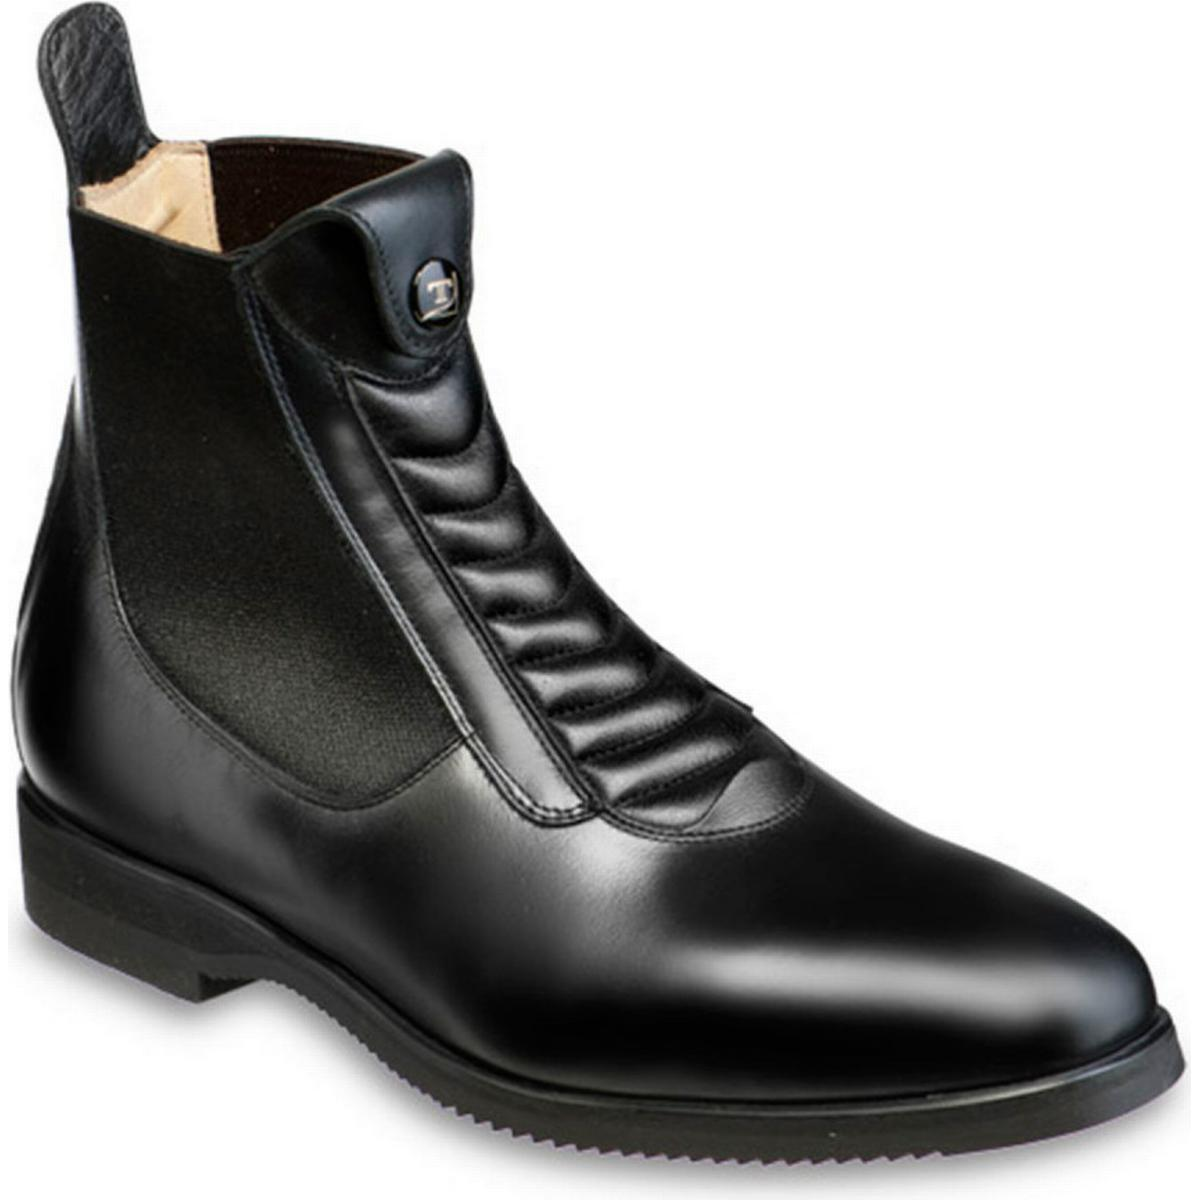 riding boots punched leather marilyn